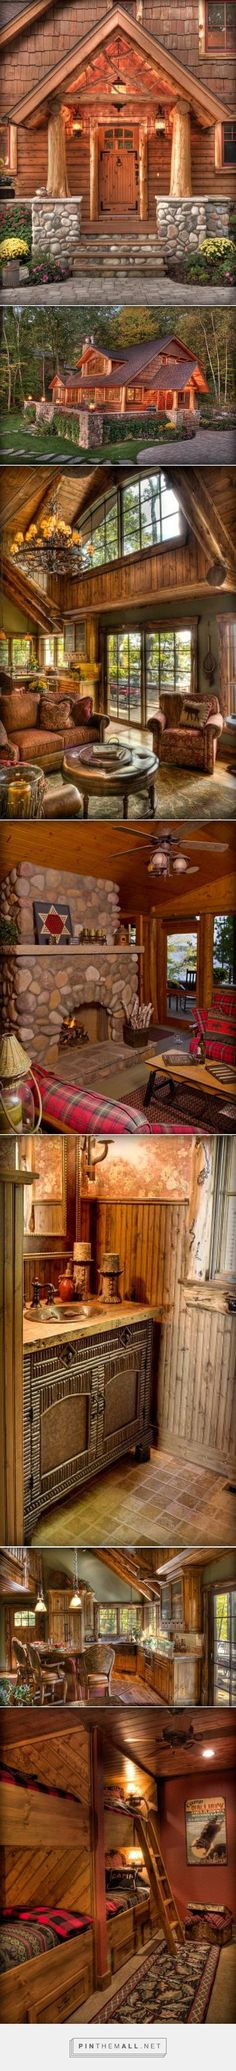 This house is ticking off all the boxes for me in what I want in a log home. - collage created via http://pinthemall.net #LogHouses